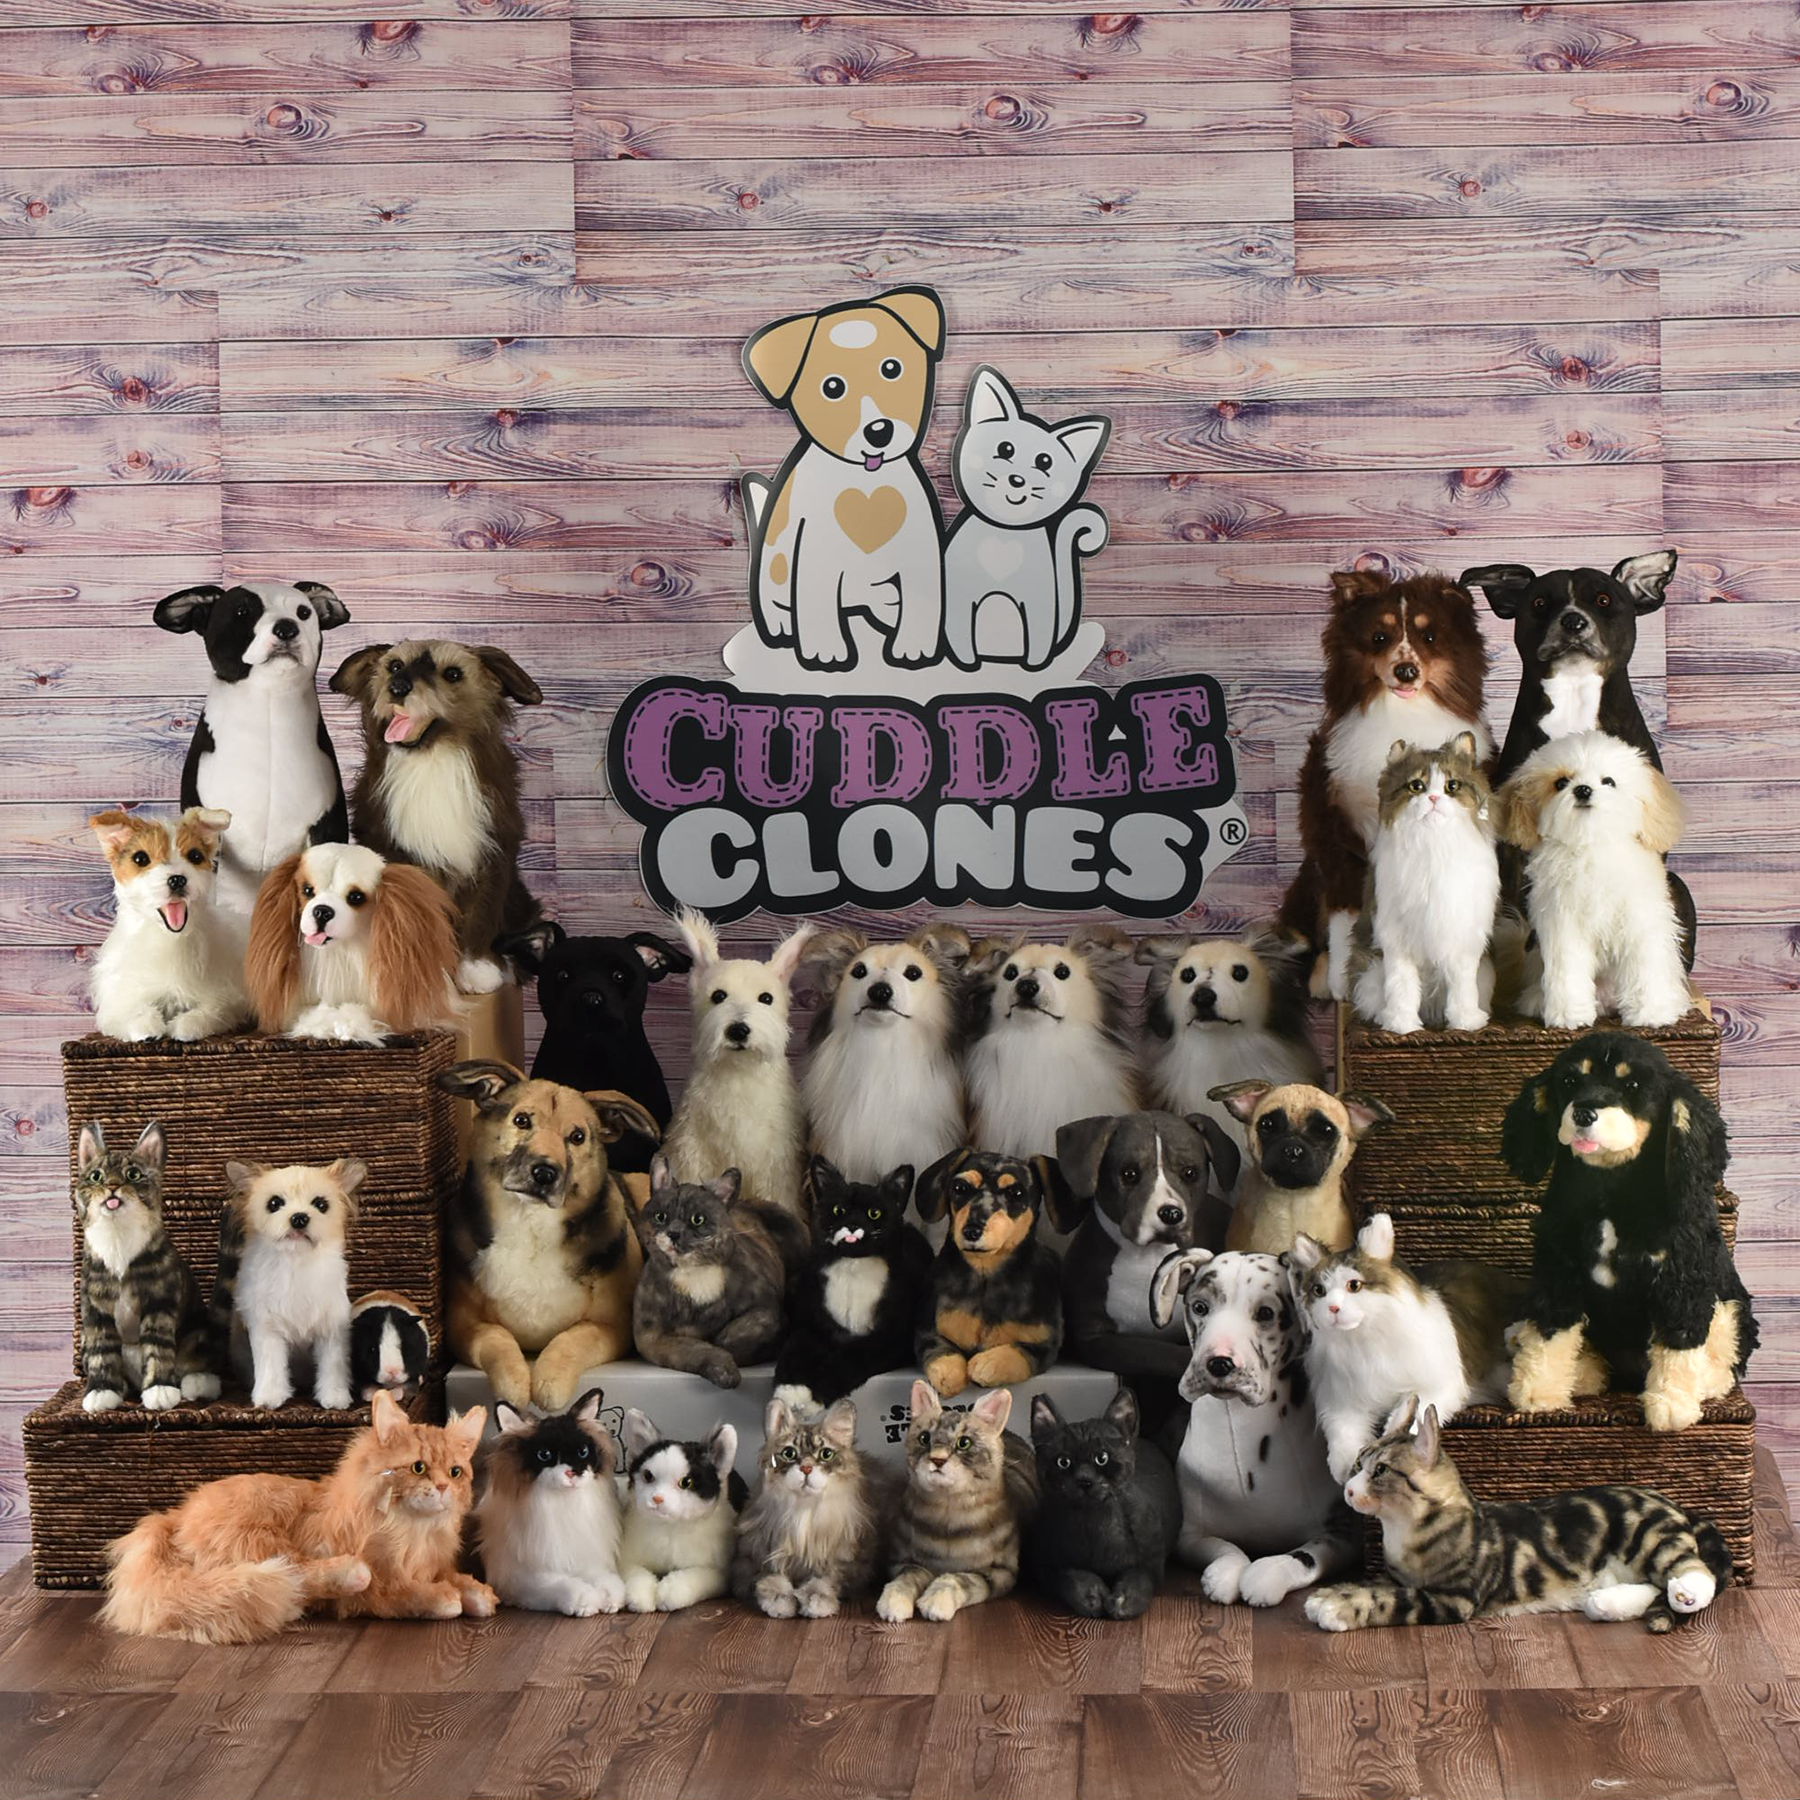 Some Of Our Newest Cuddle Clones Dogs Cats Horses Rabbits Guineapigs Ferrets Custom Stuffed Animal Bunny Mom Cuddling